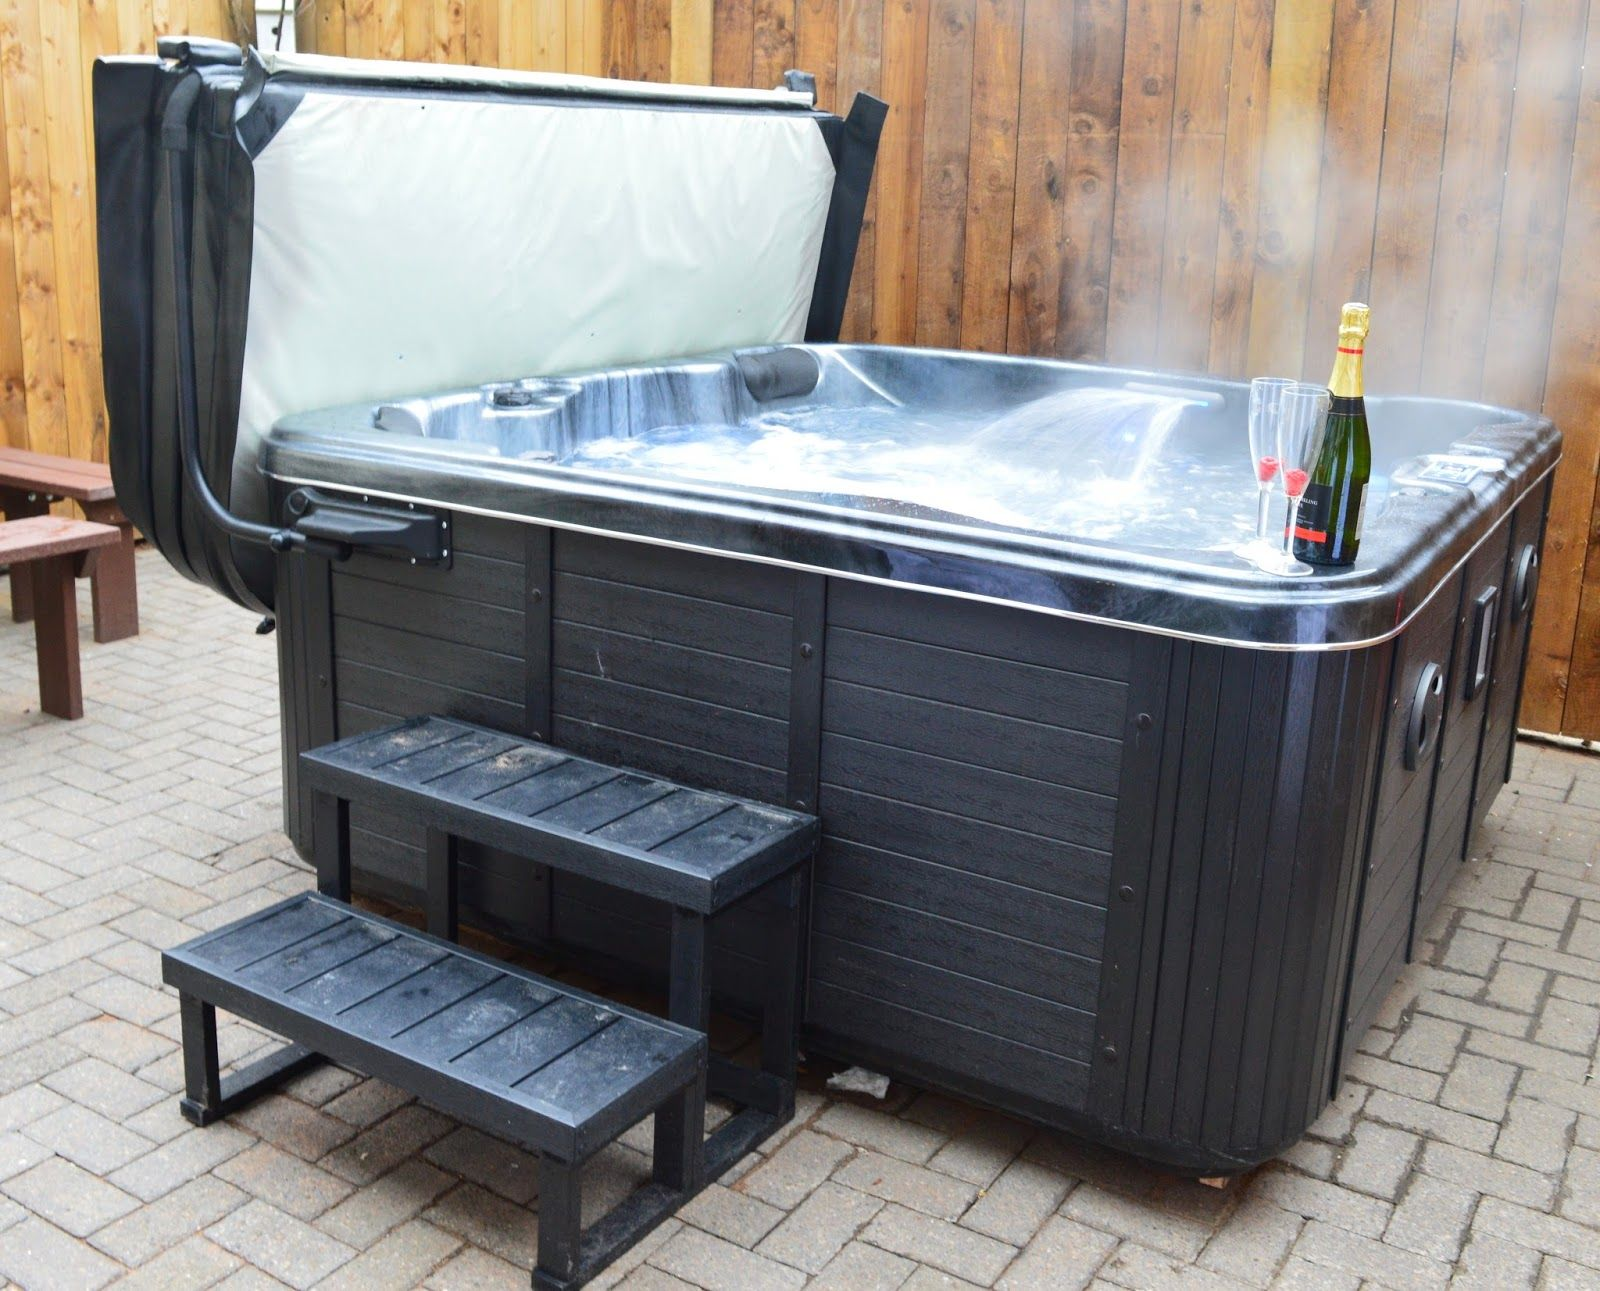 20 Lodges With Hot Tubs Within A 2 Hour Drive Of Newcastle Upon